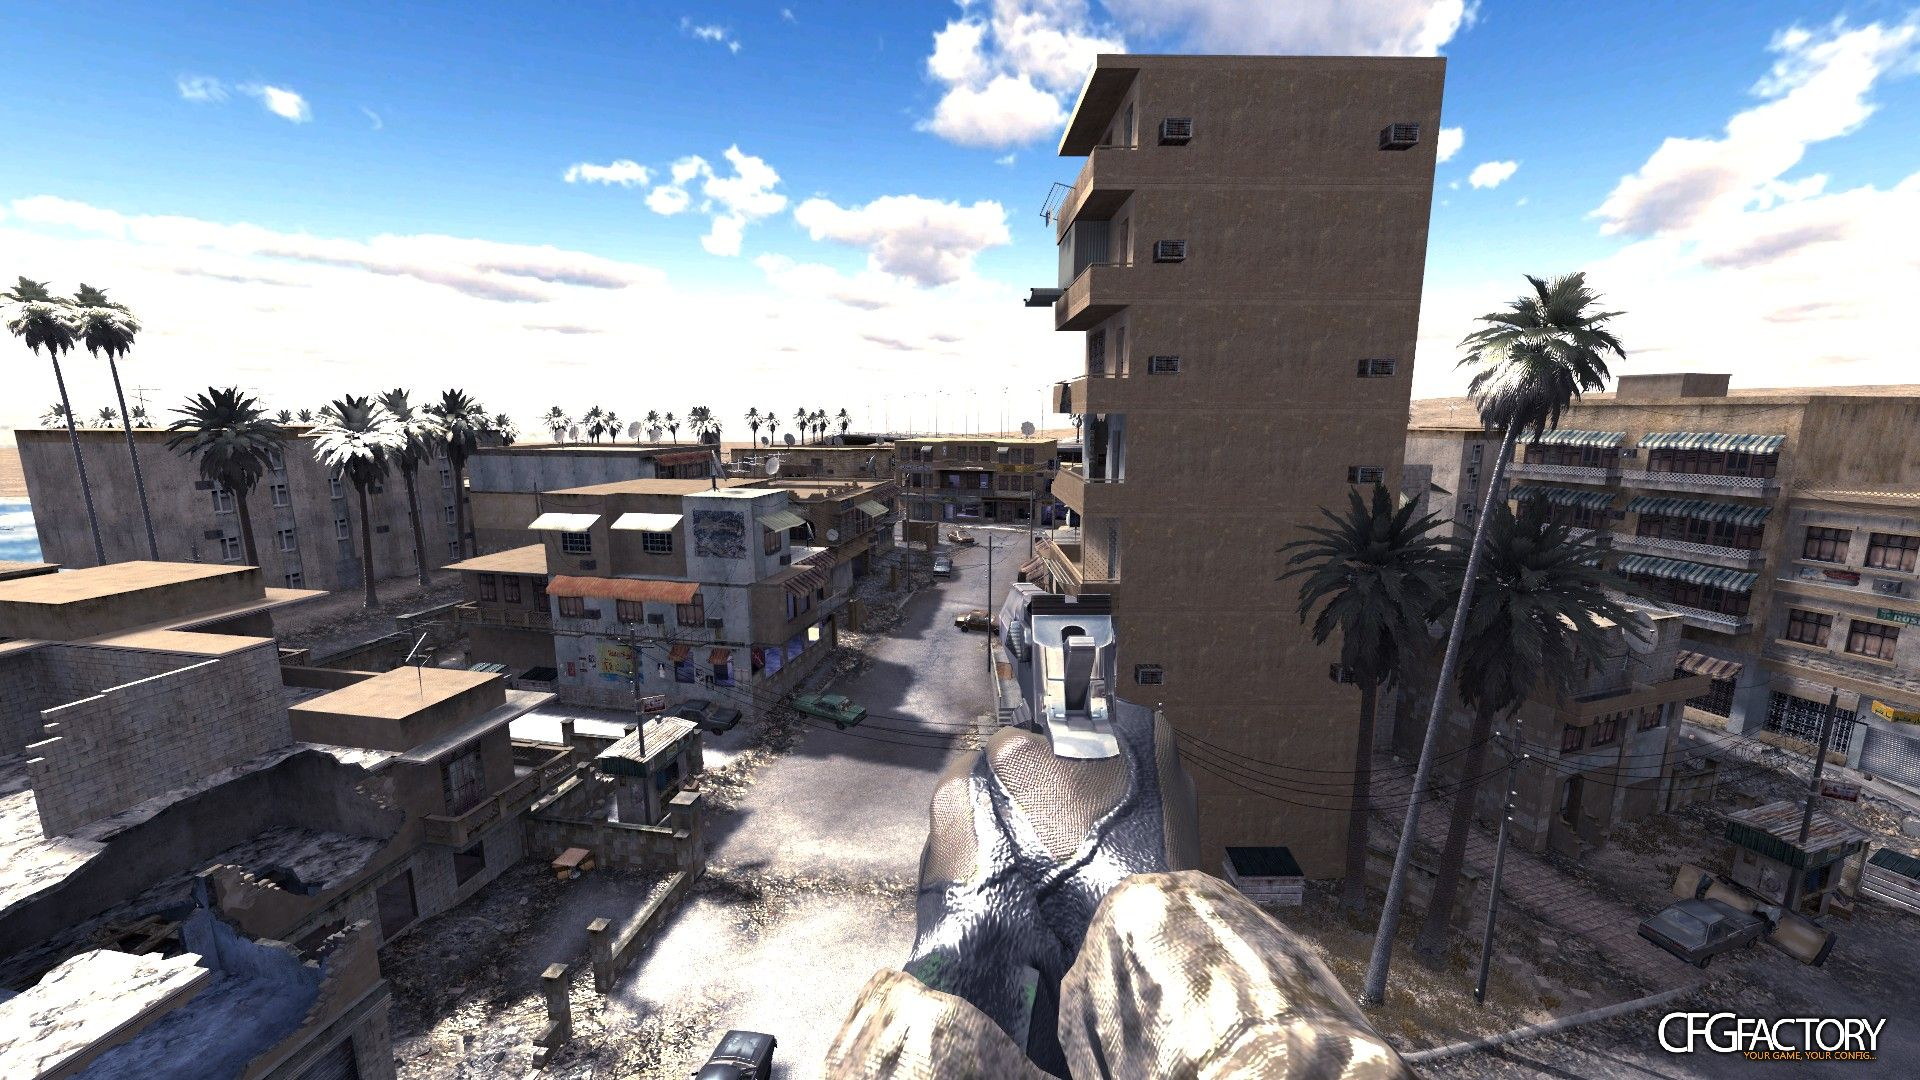 cod4, skies, bright blue sky, n/a